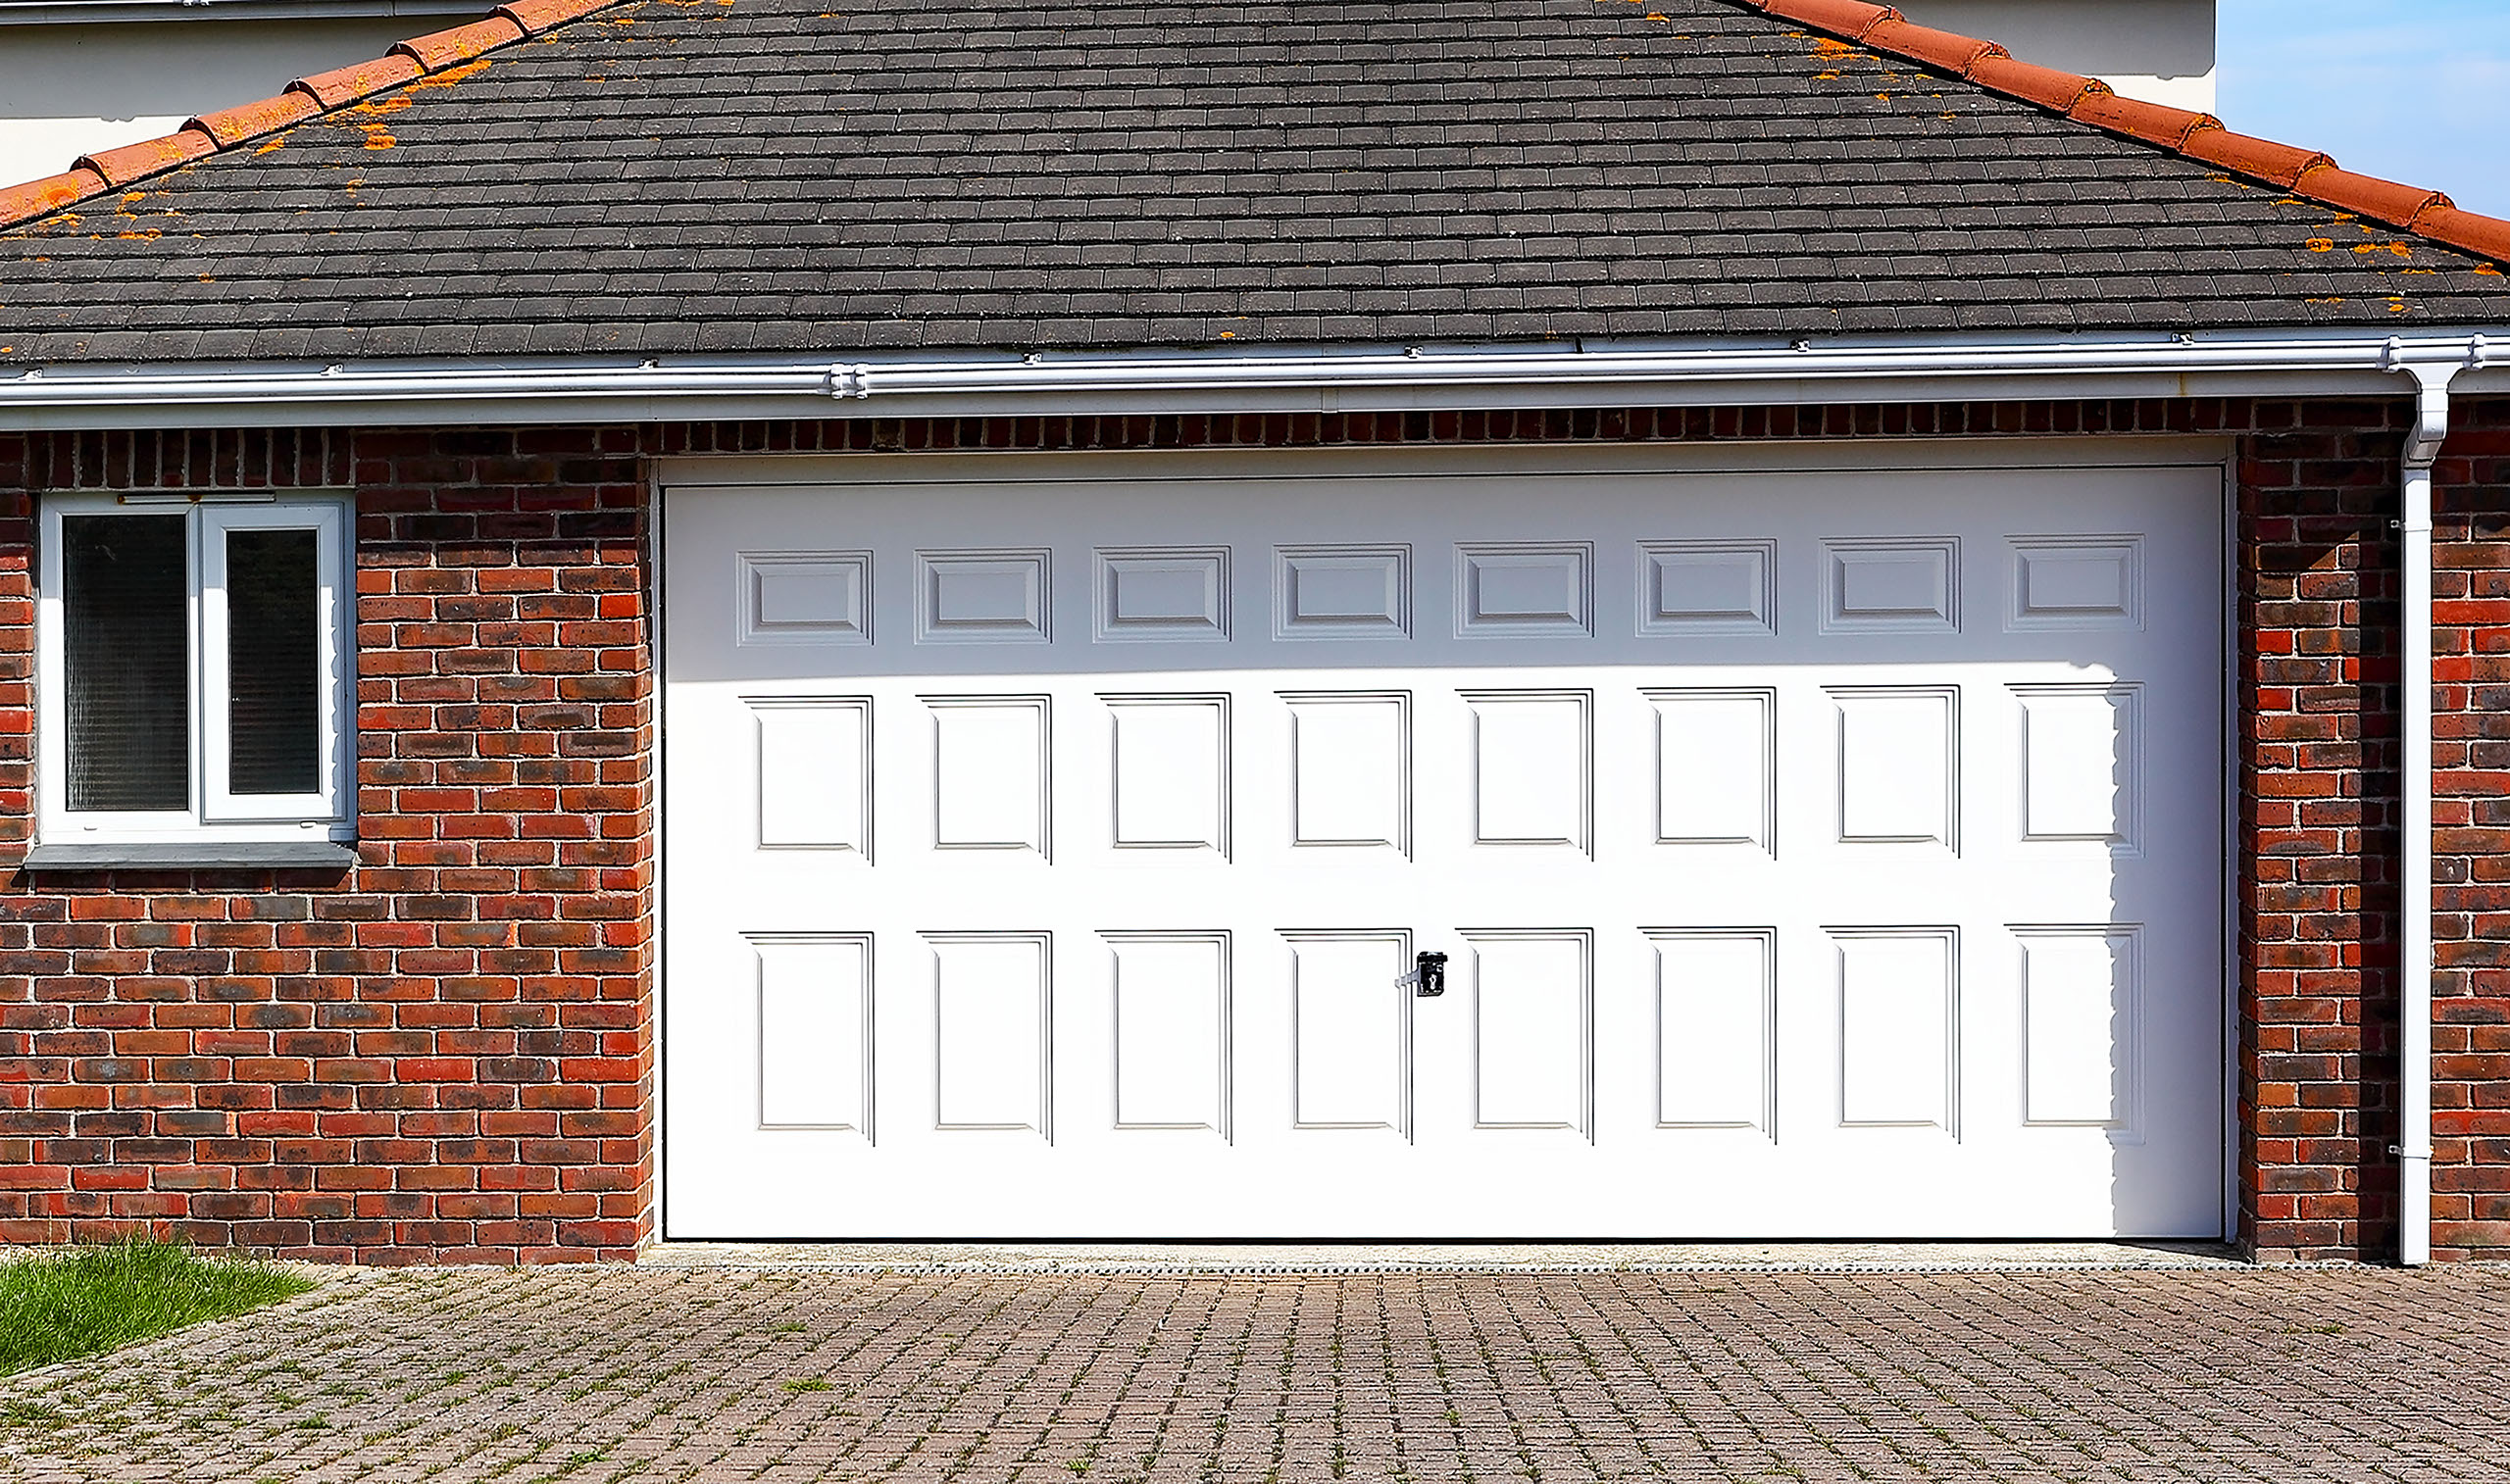 Look Garage Doors Garage door specialists in Mansfield Nottinghamshire & High Quality Garage Doors | Look Garage Doors Mansfield Nottingham